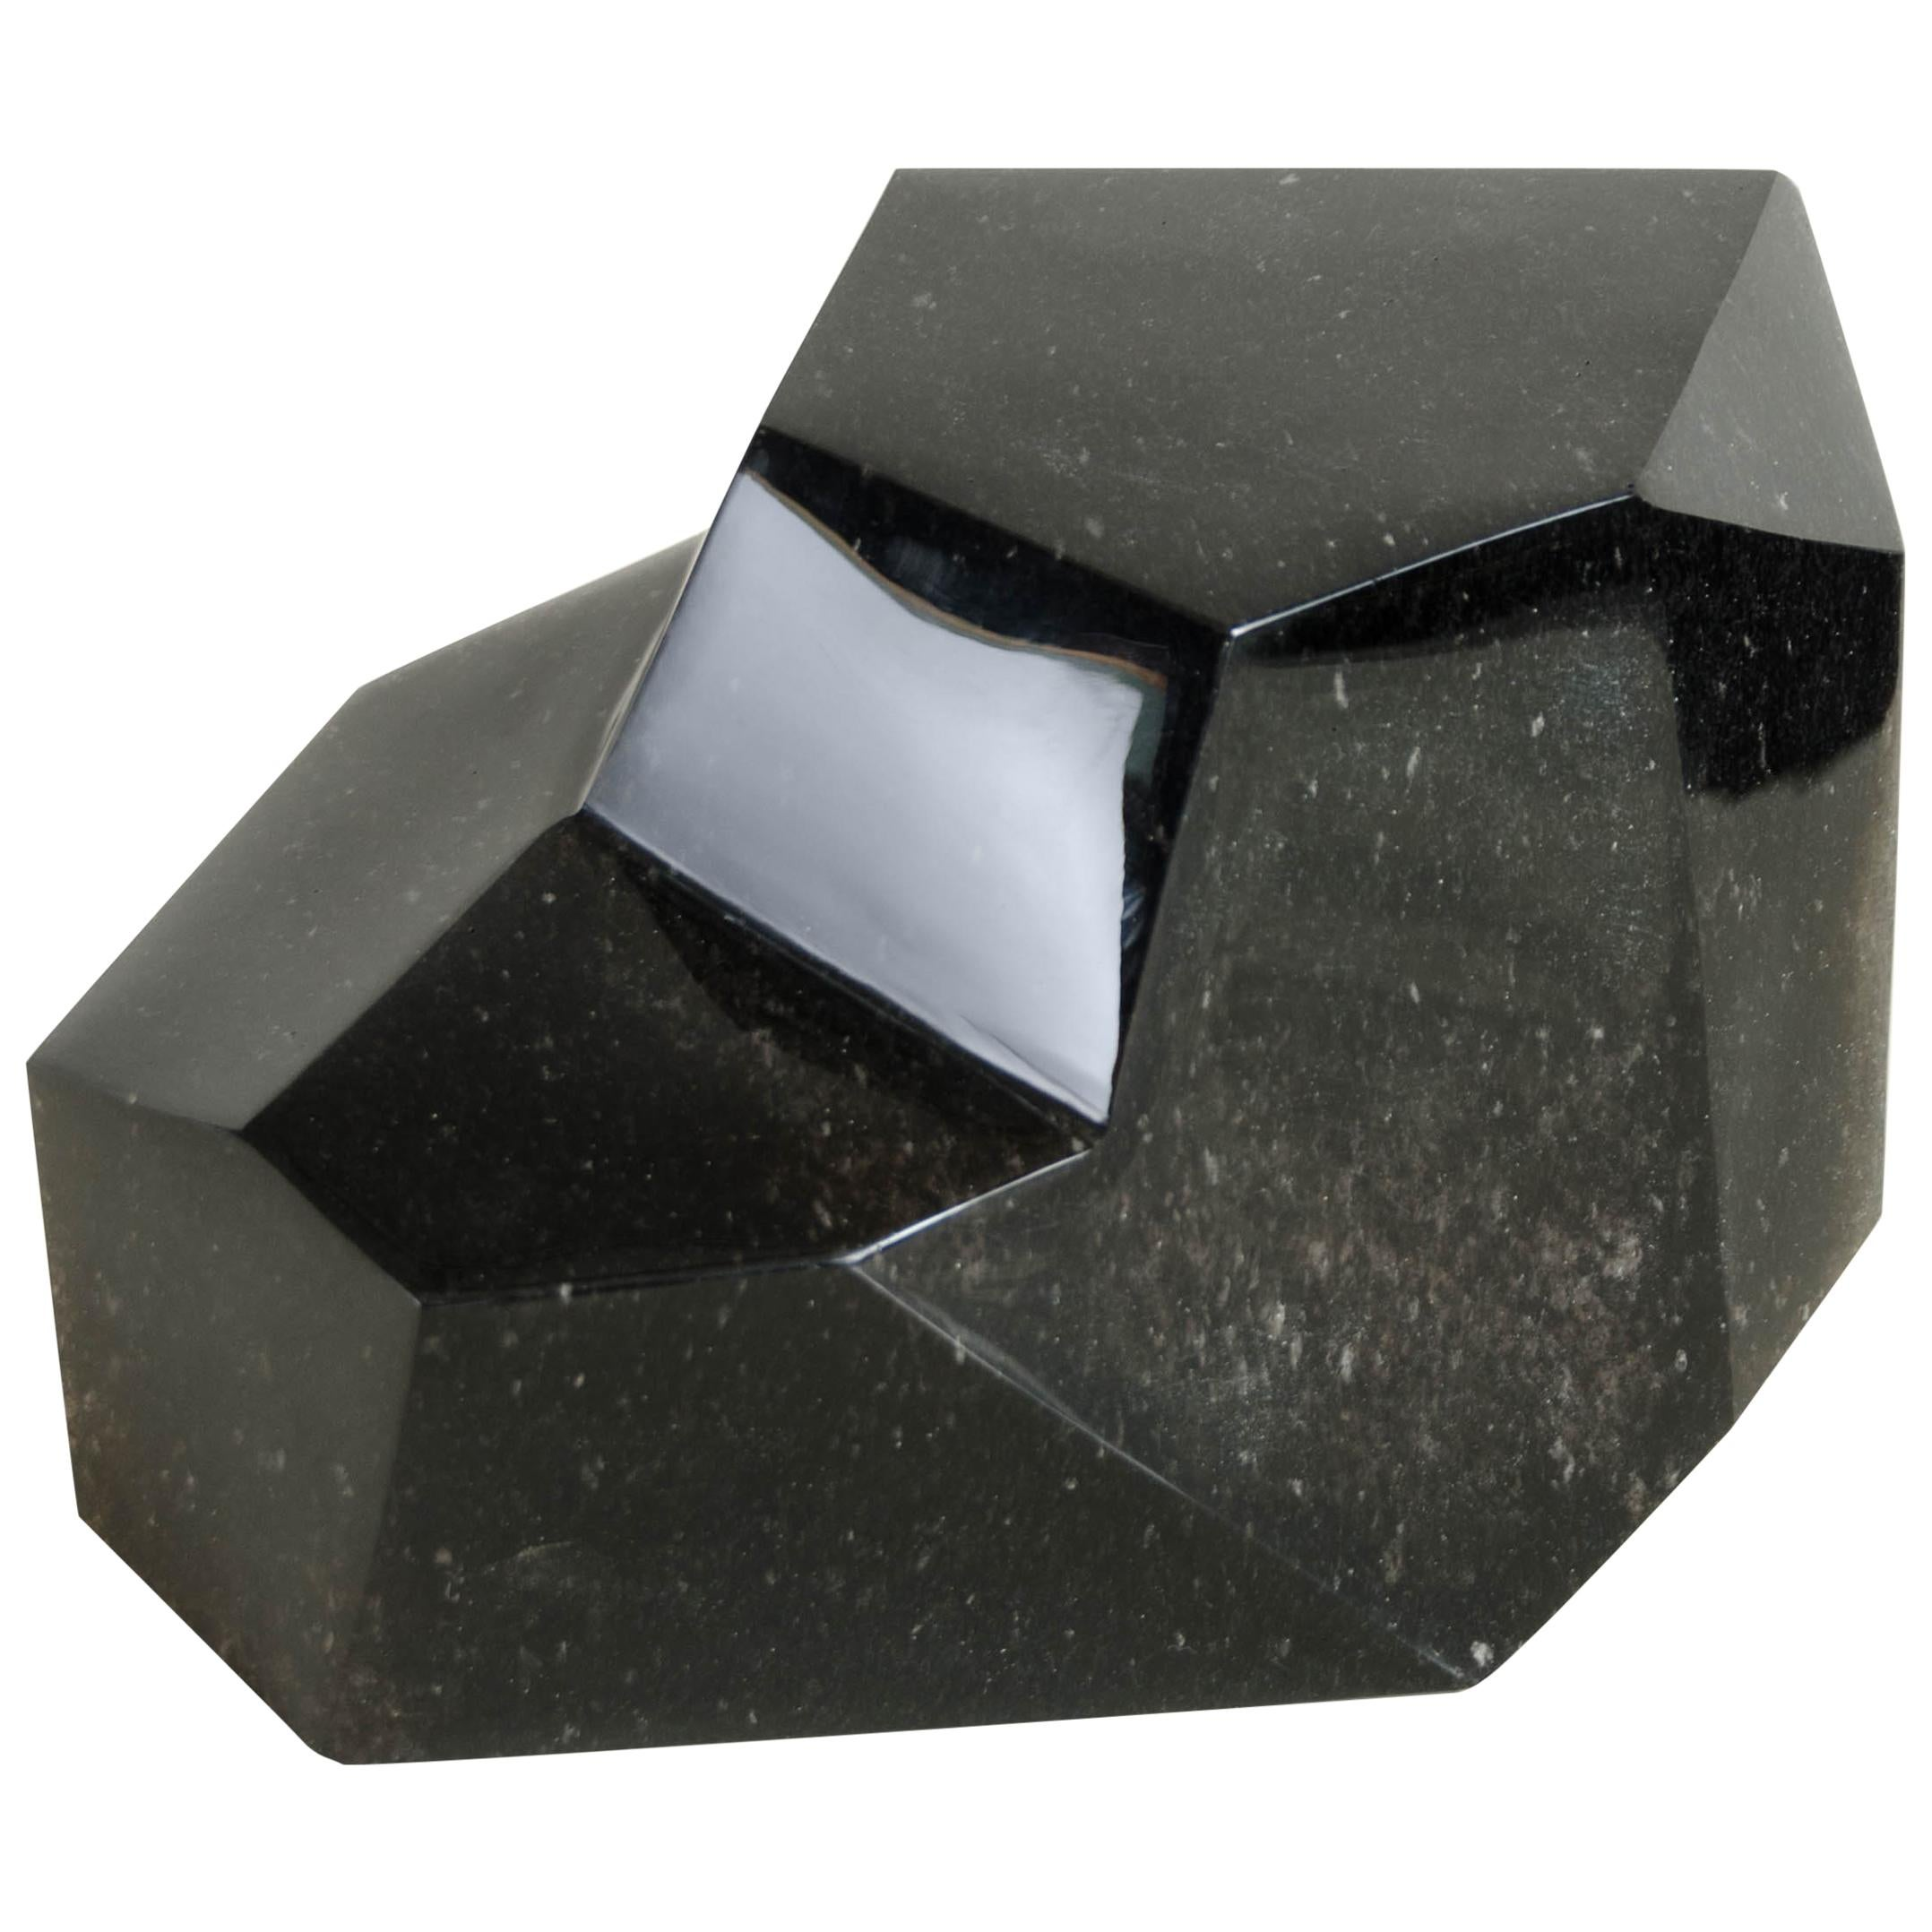 Faceted Sculpture, Small, Black Crystal by Robert Kuo, Hand Carved, Limited